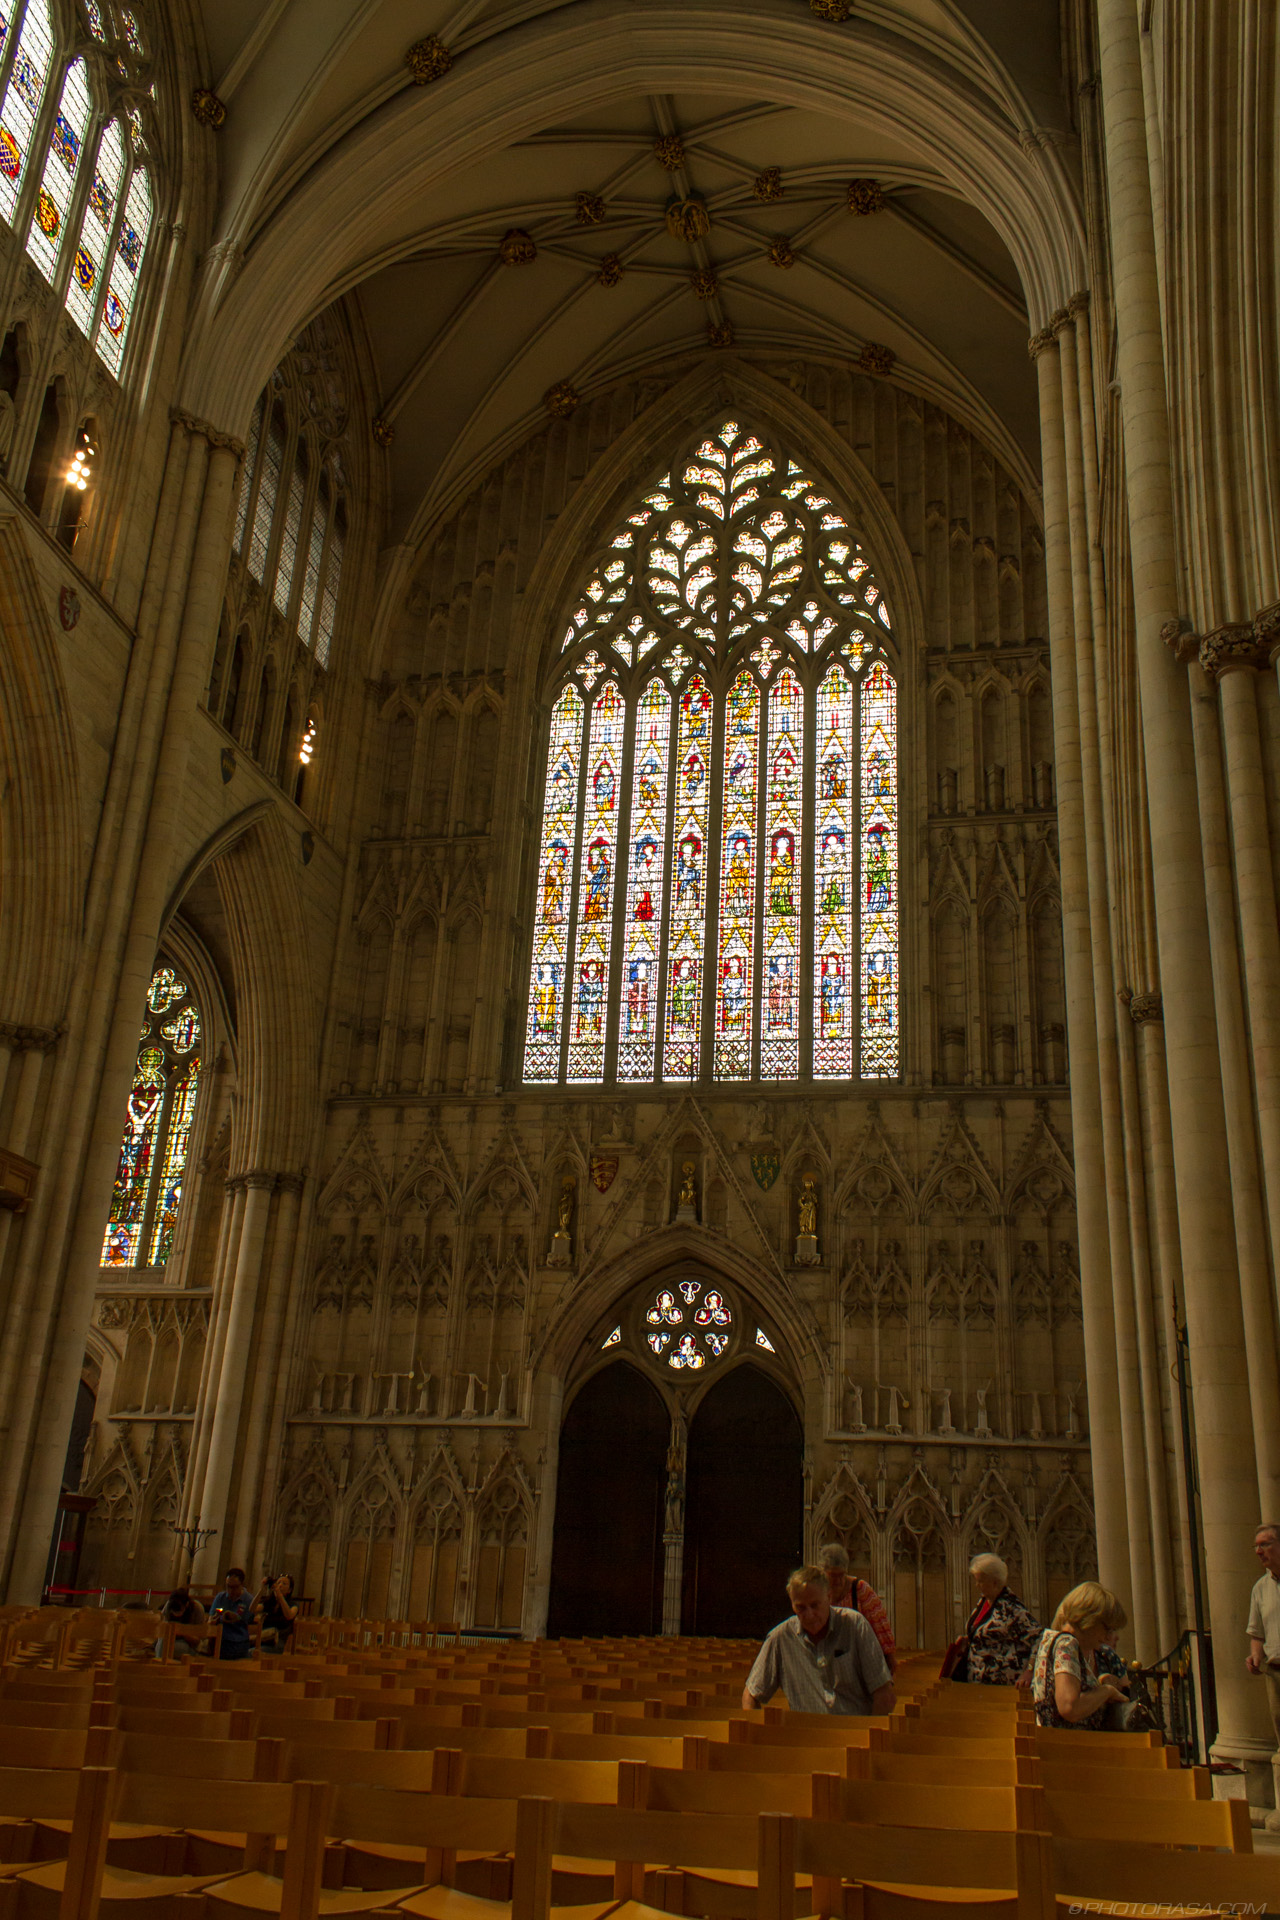 https://photorasa.com/yorkminster-cathedral/west-stained-glass-in-the-nave/